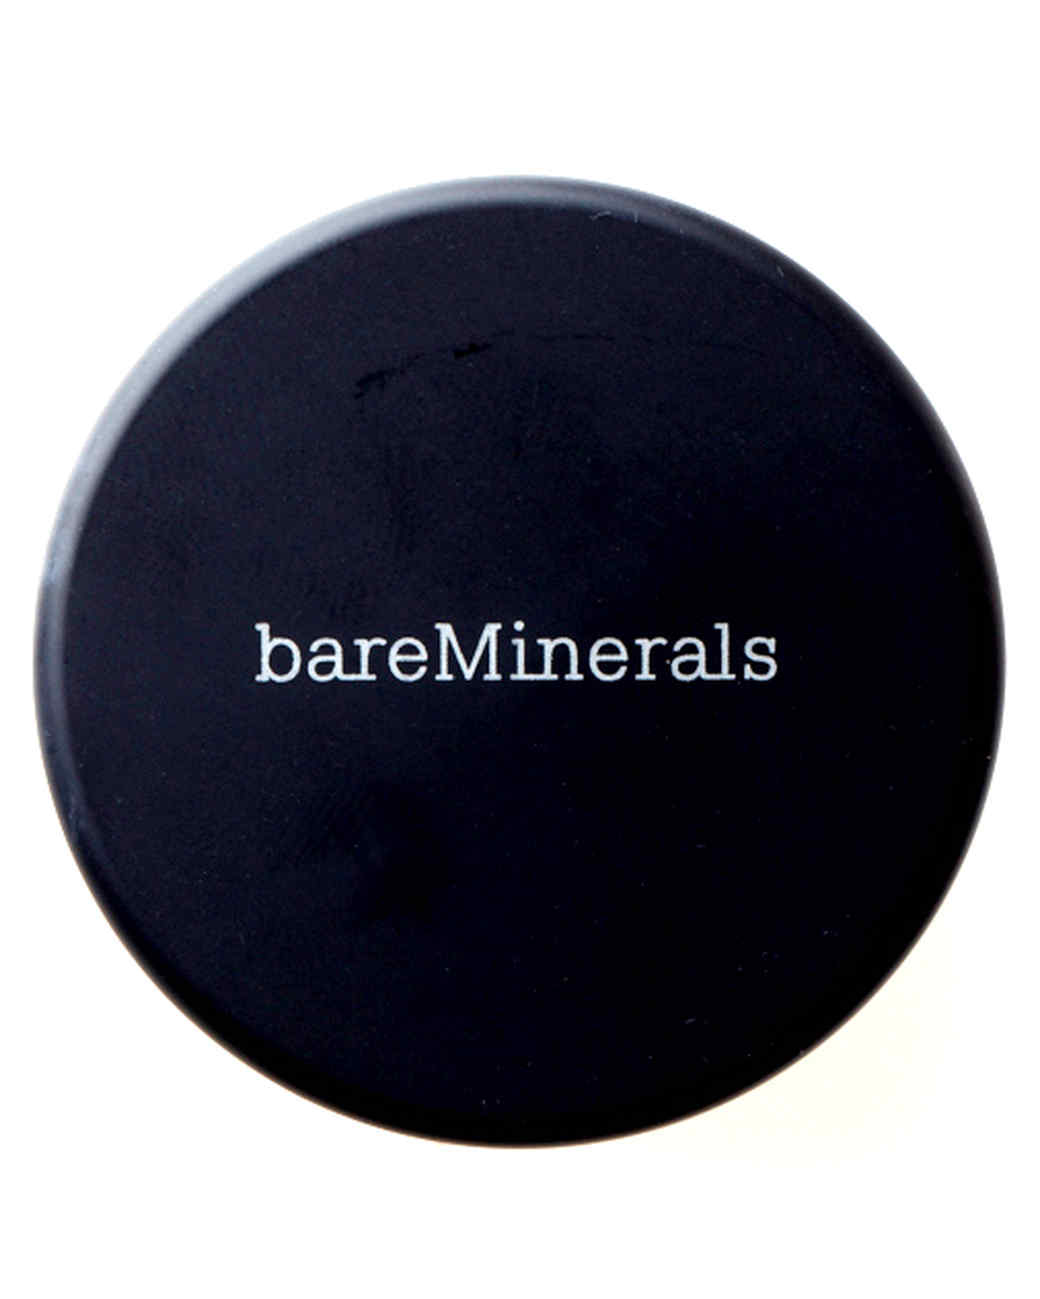 bare-minerals-eye-brightenermsl-0512.jpg